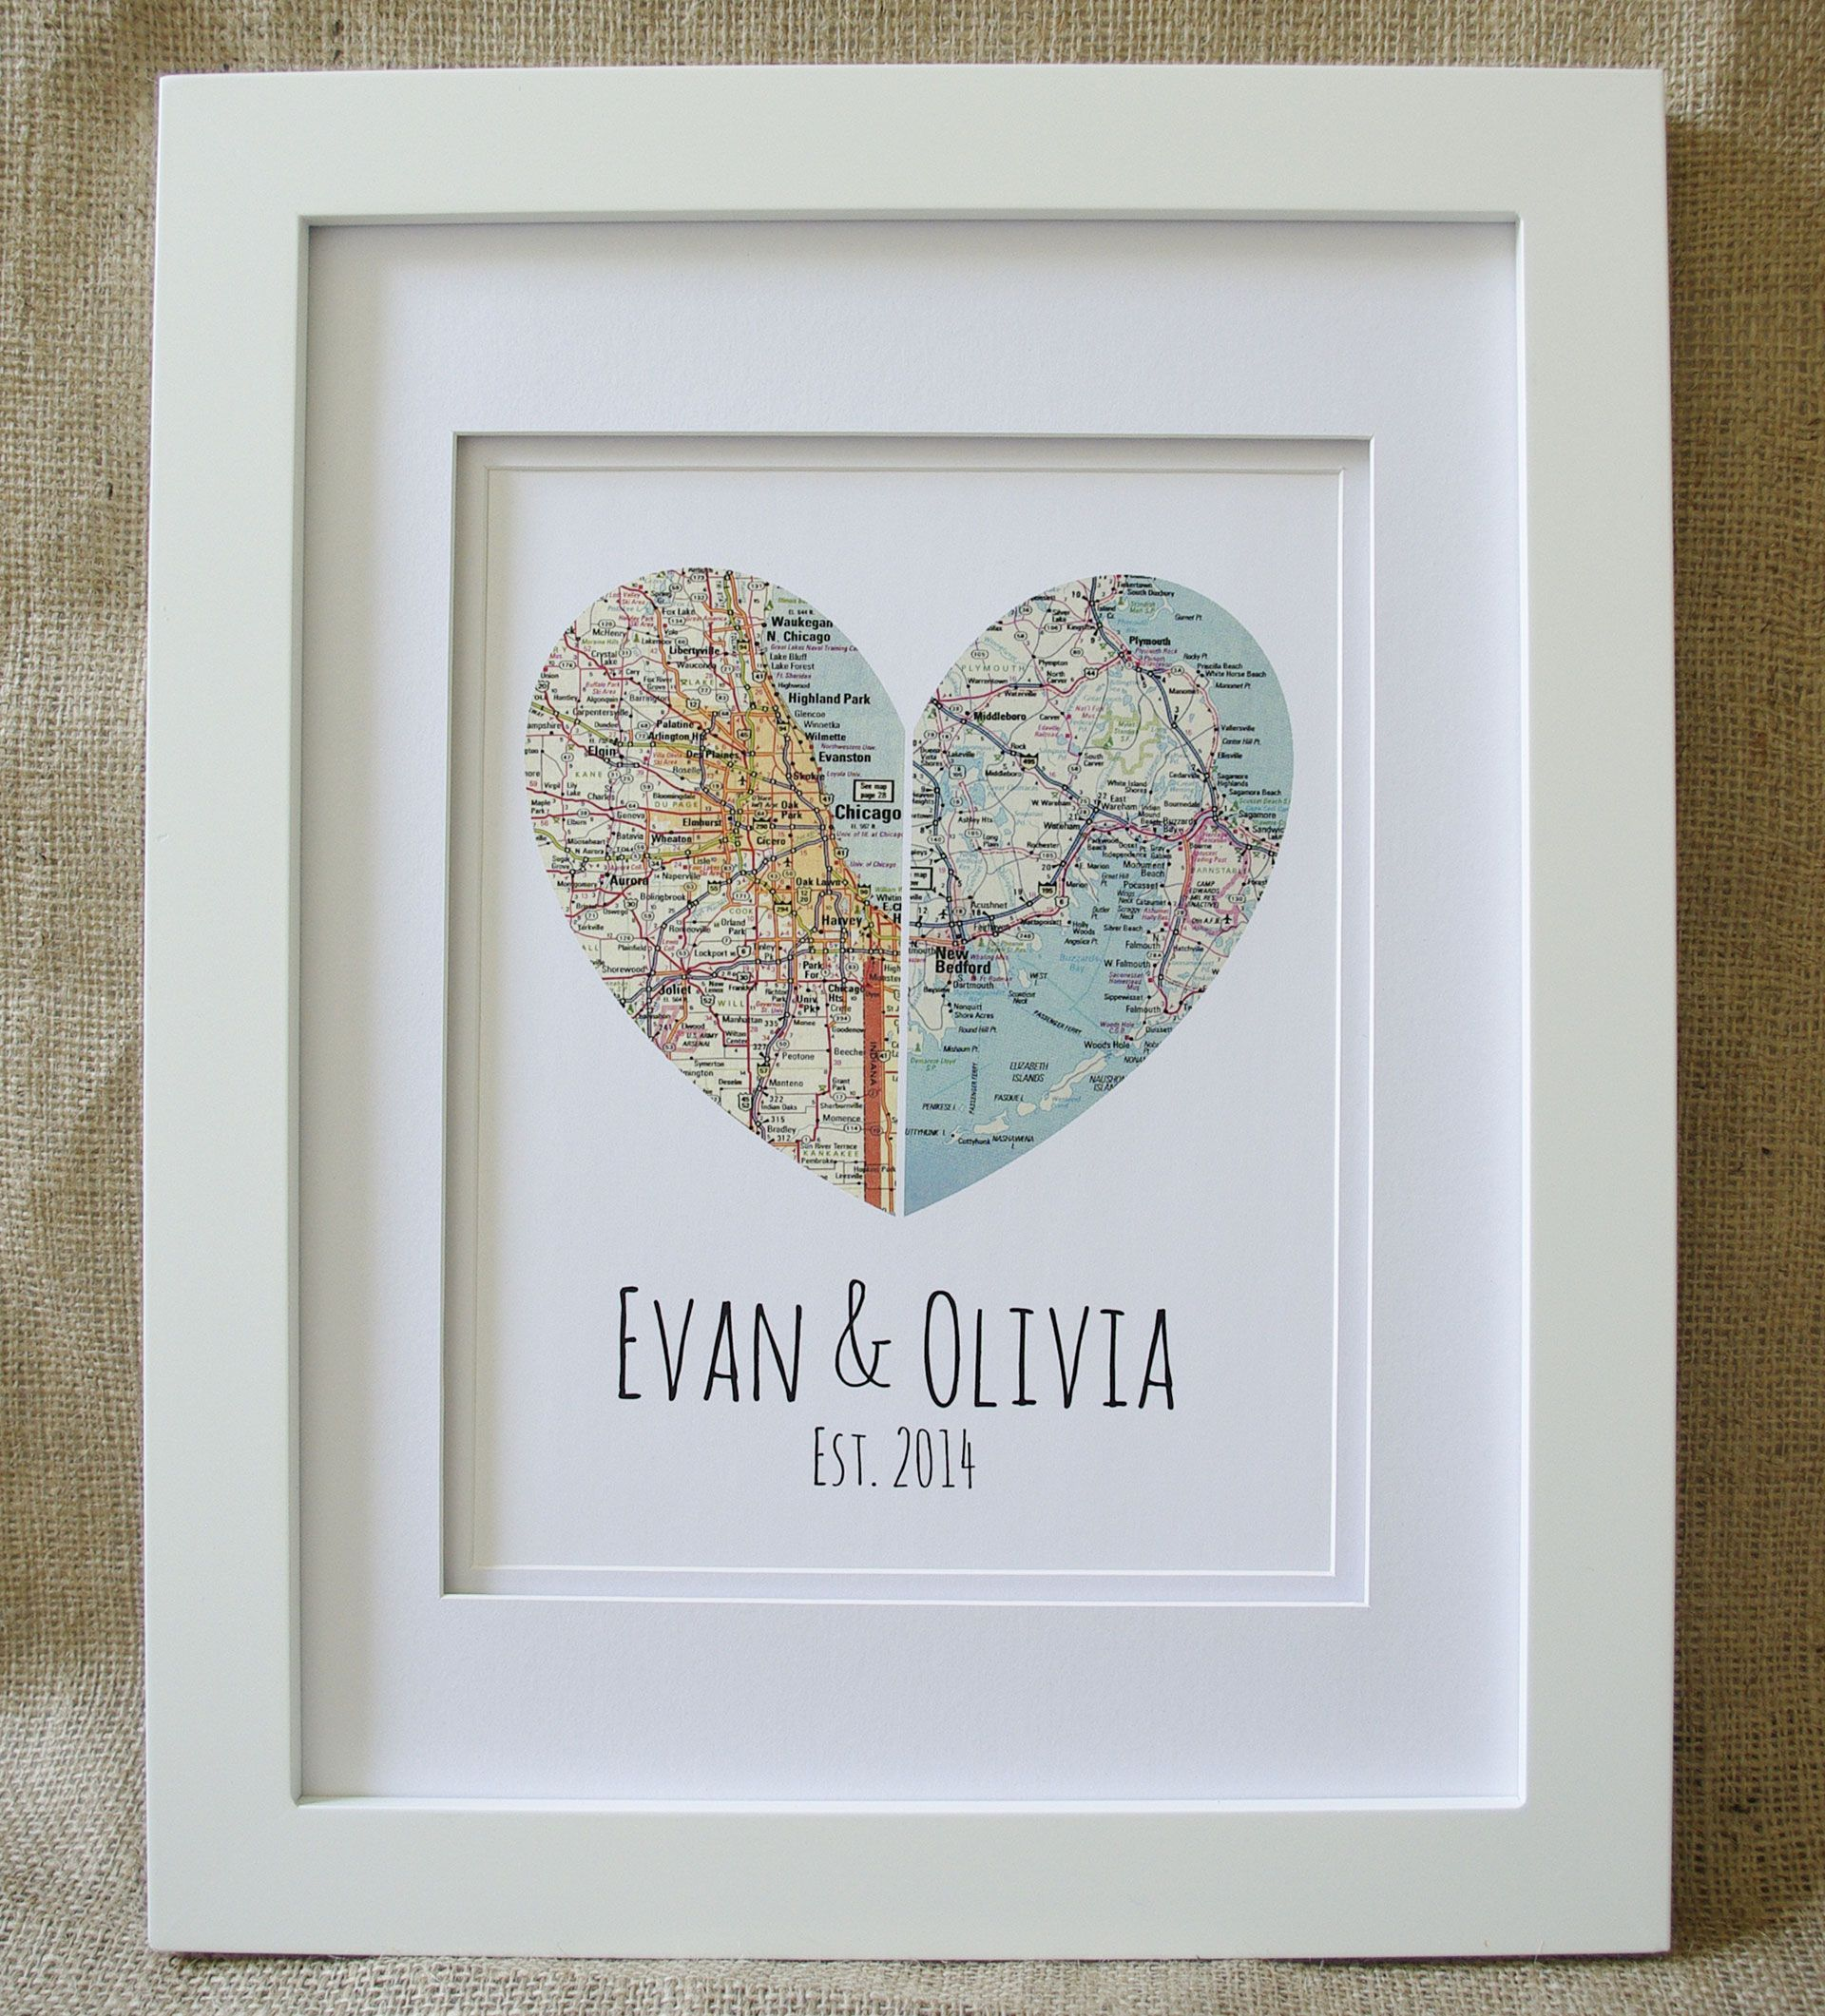 Gonna Find A Map Of Paw And One Oldtown Do This For Our Bedroom 12 More Personal Wedding Gifts Framed Hearts